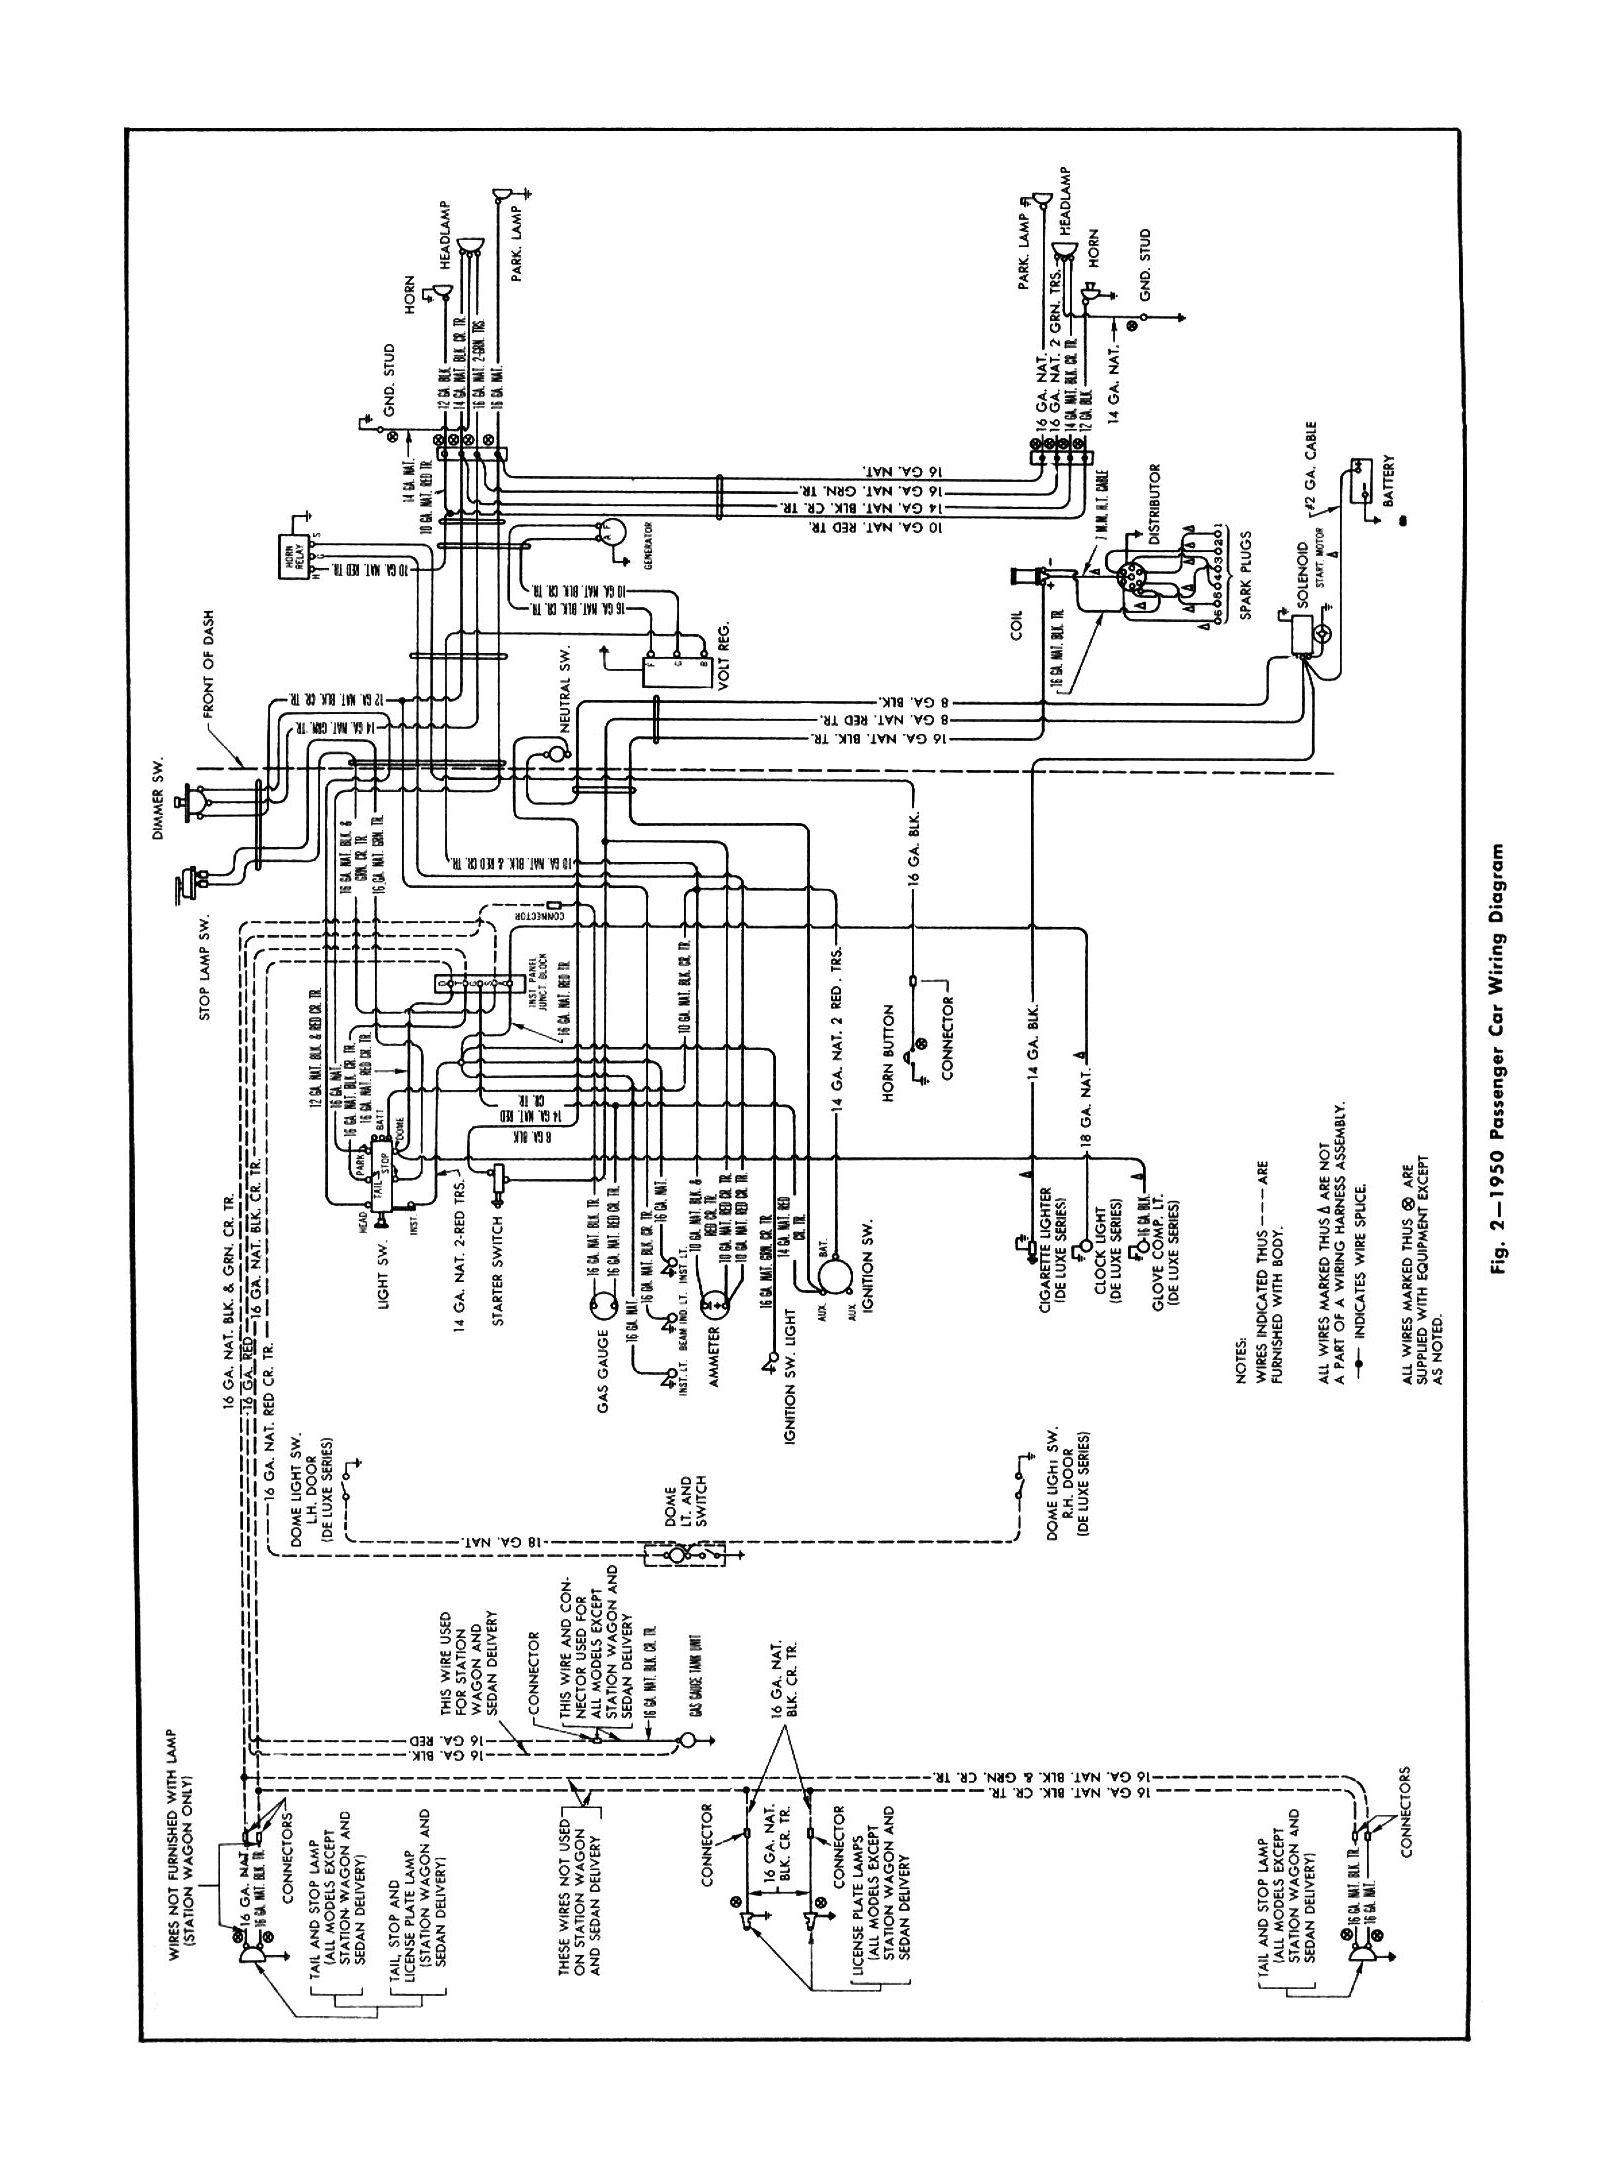 Wiring Diagram For 1950 Nash - Read All Wiring Diagram on